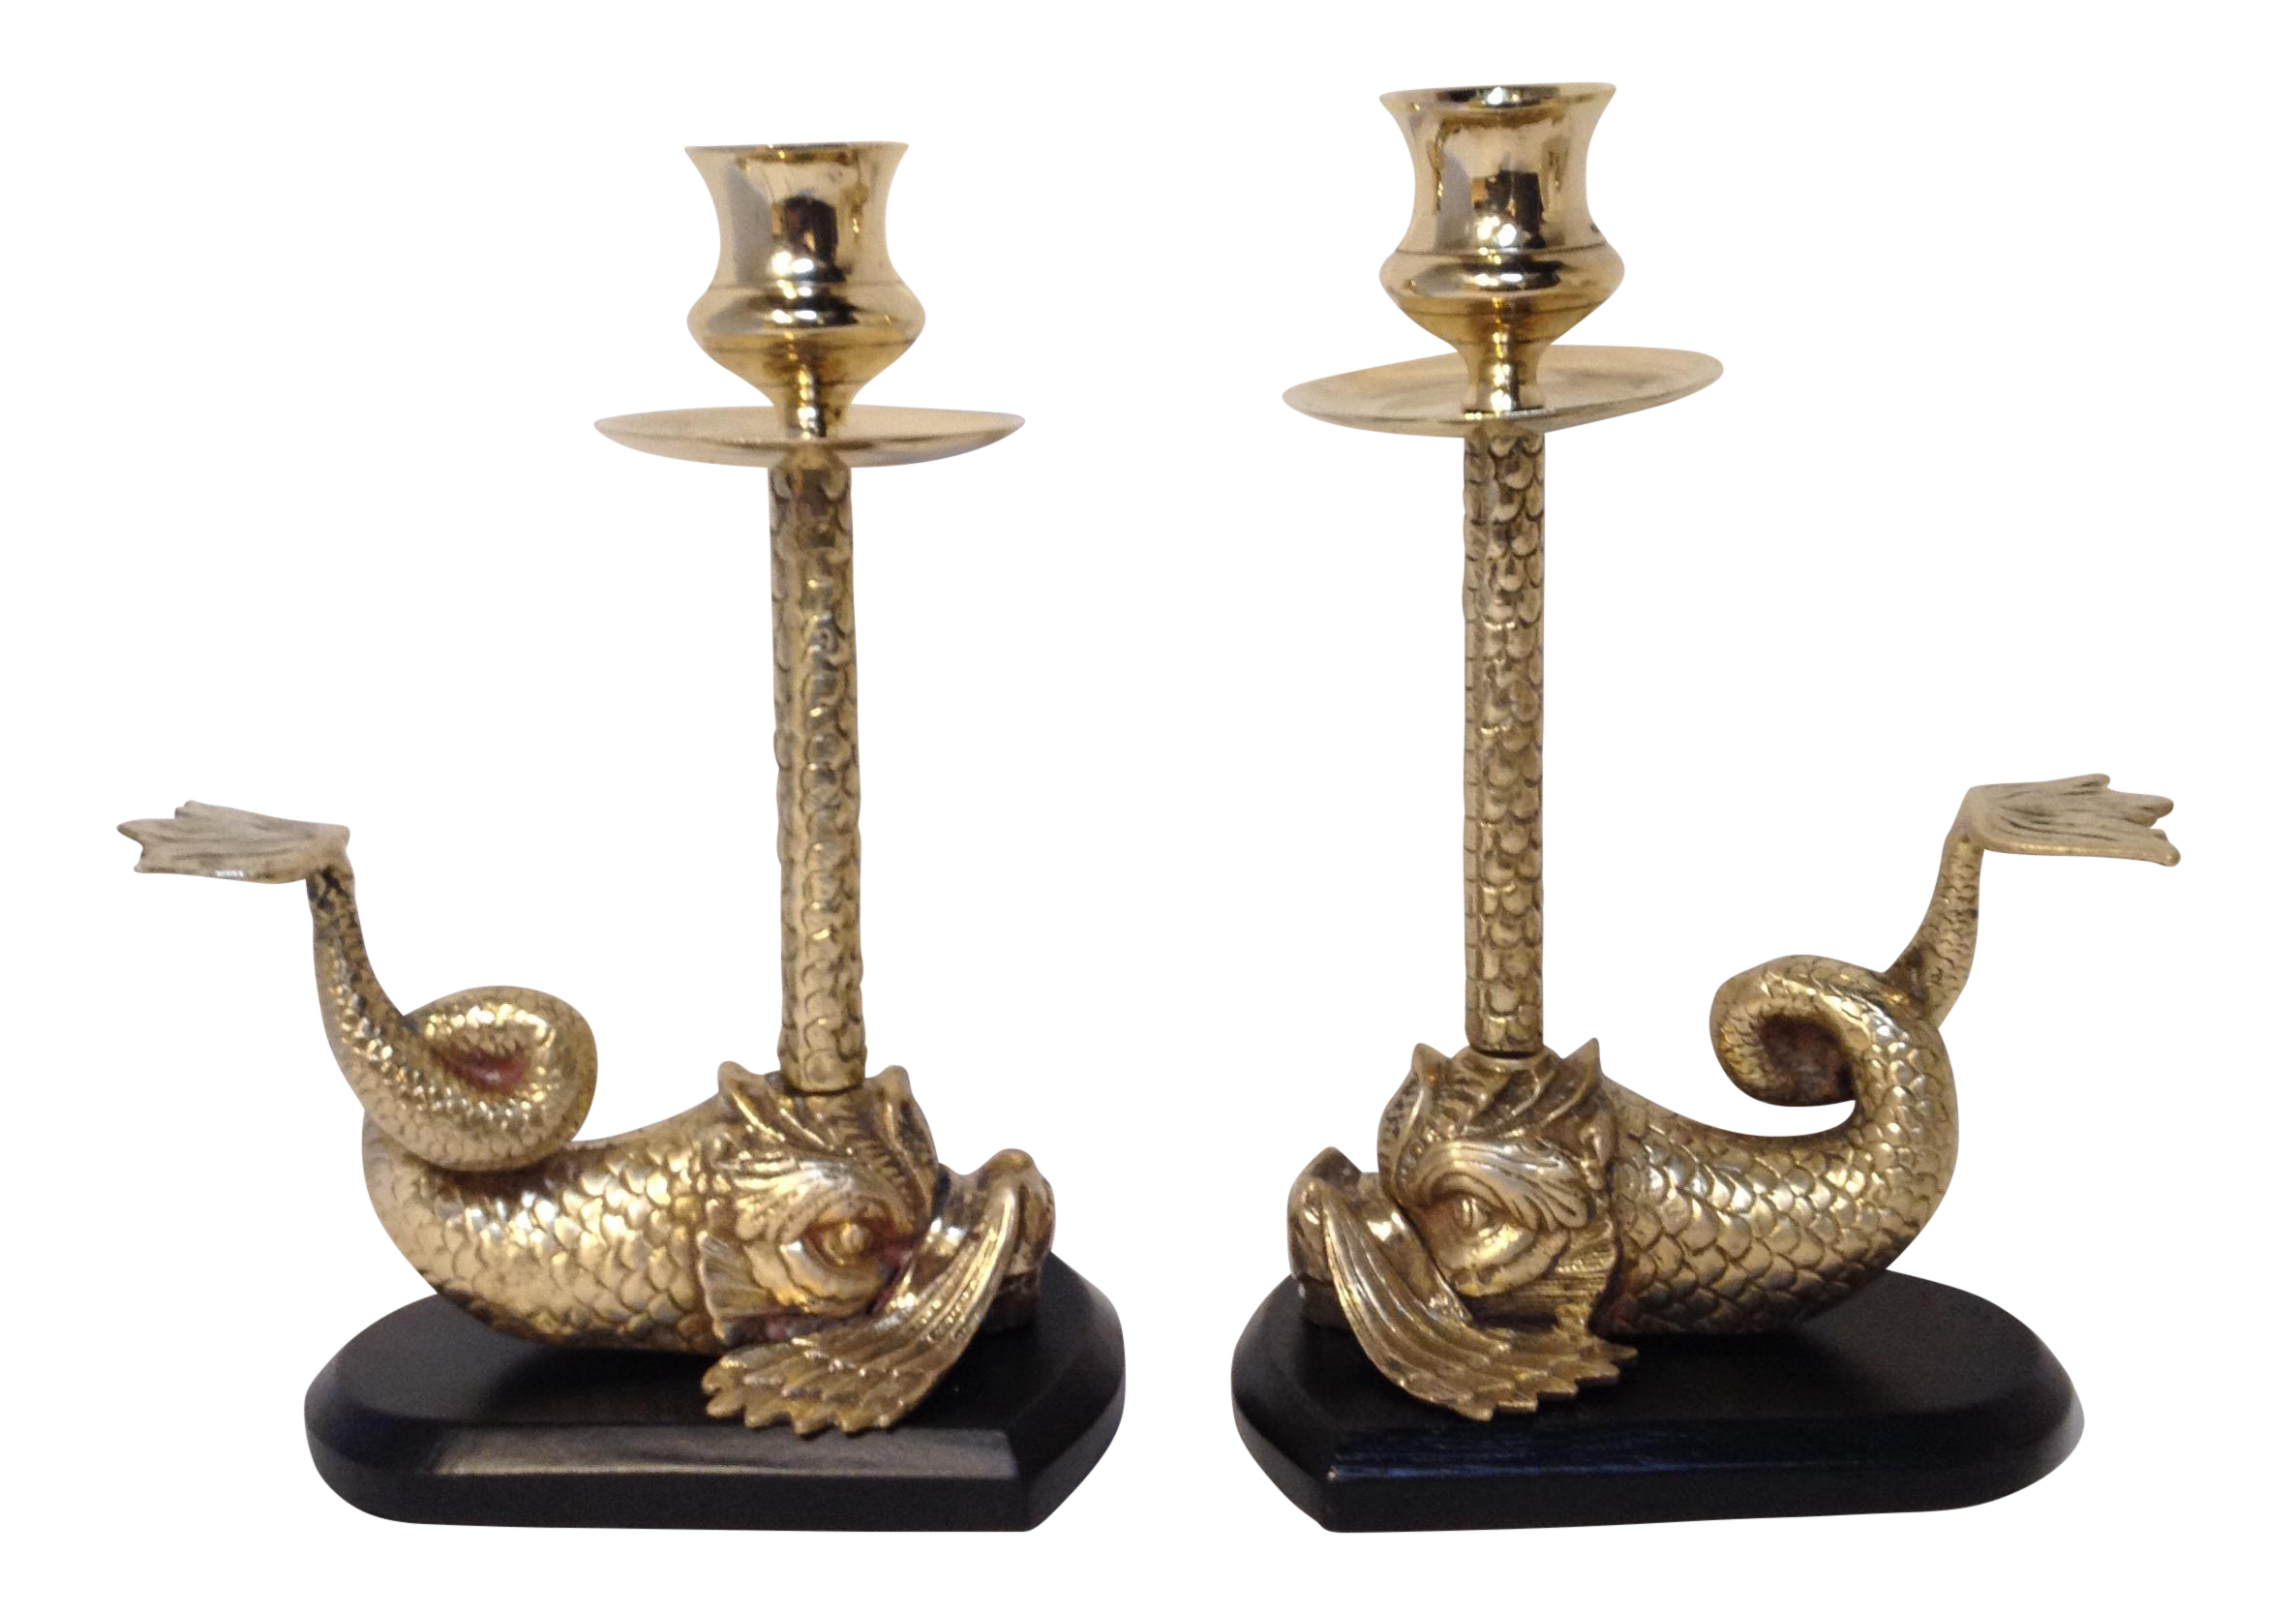 brass 39pisces39 candle holders a pair chairish With kitchen cabinet trends 2018 combined with brass wall sconces candle holders